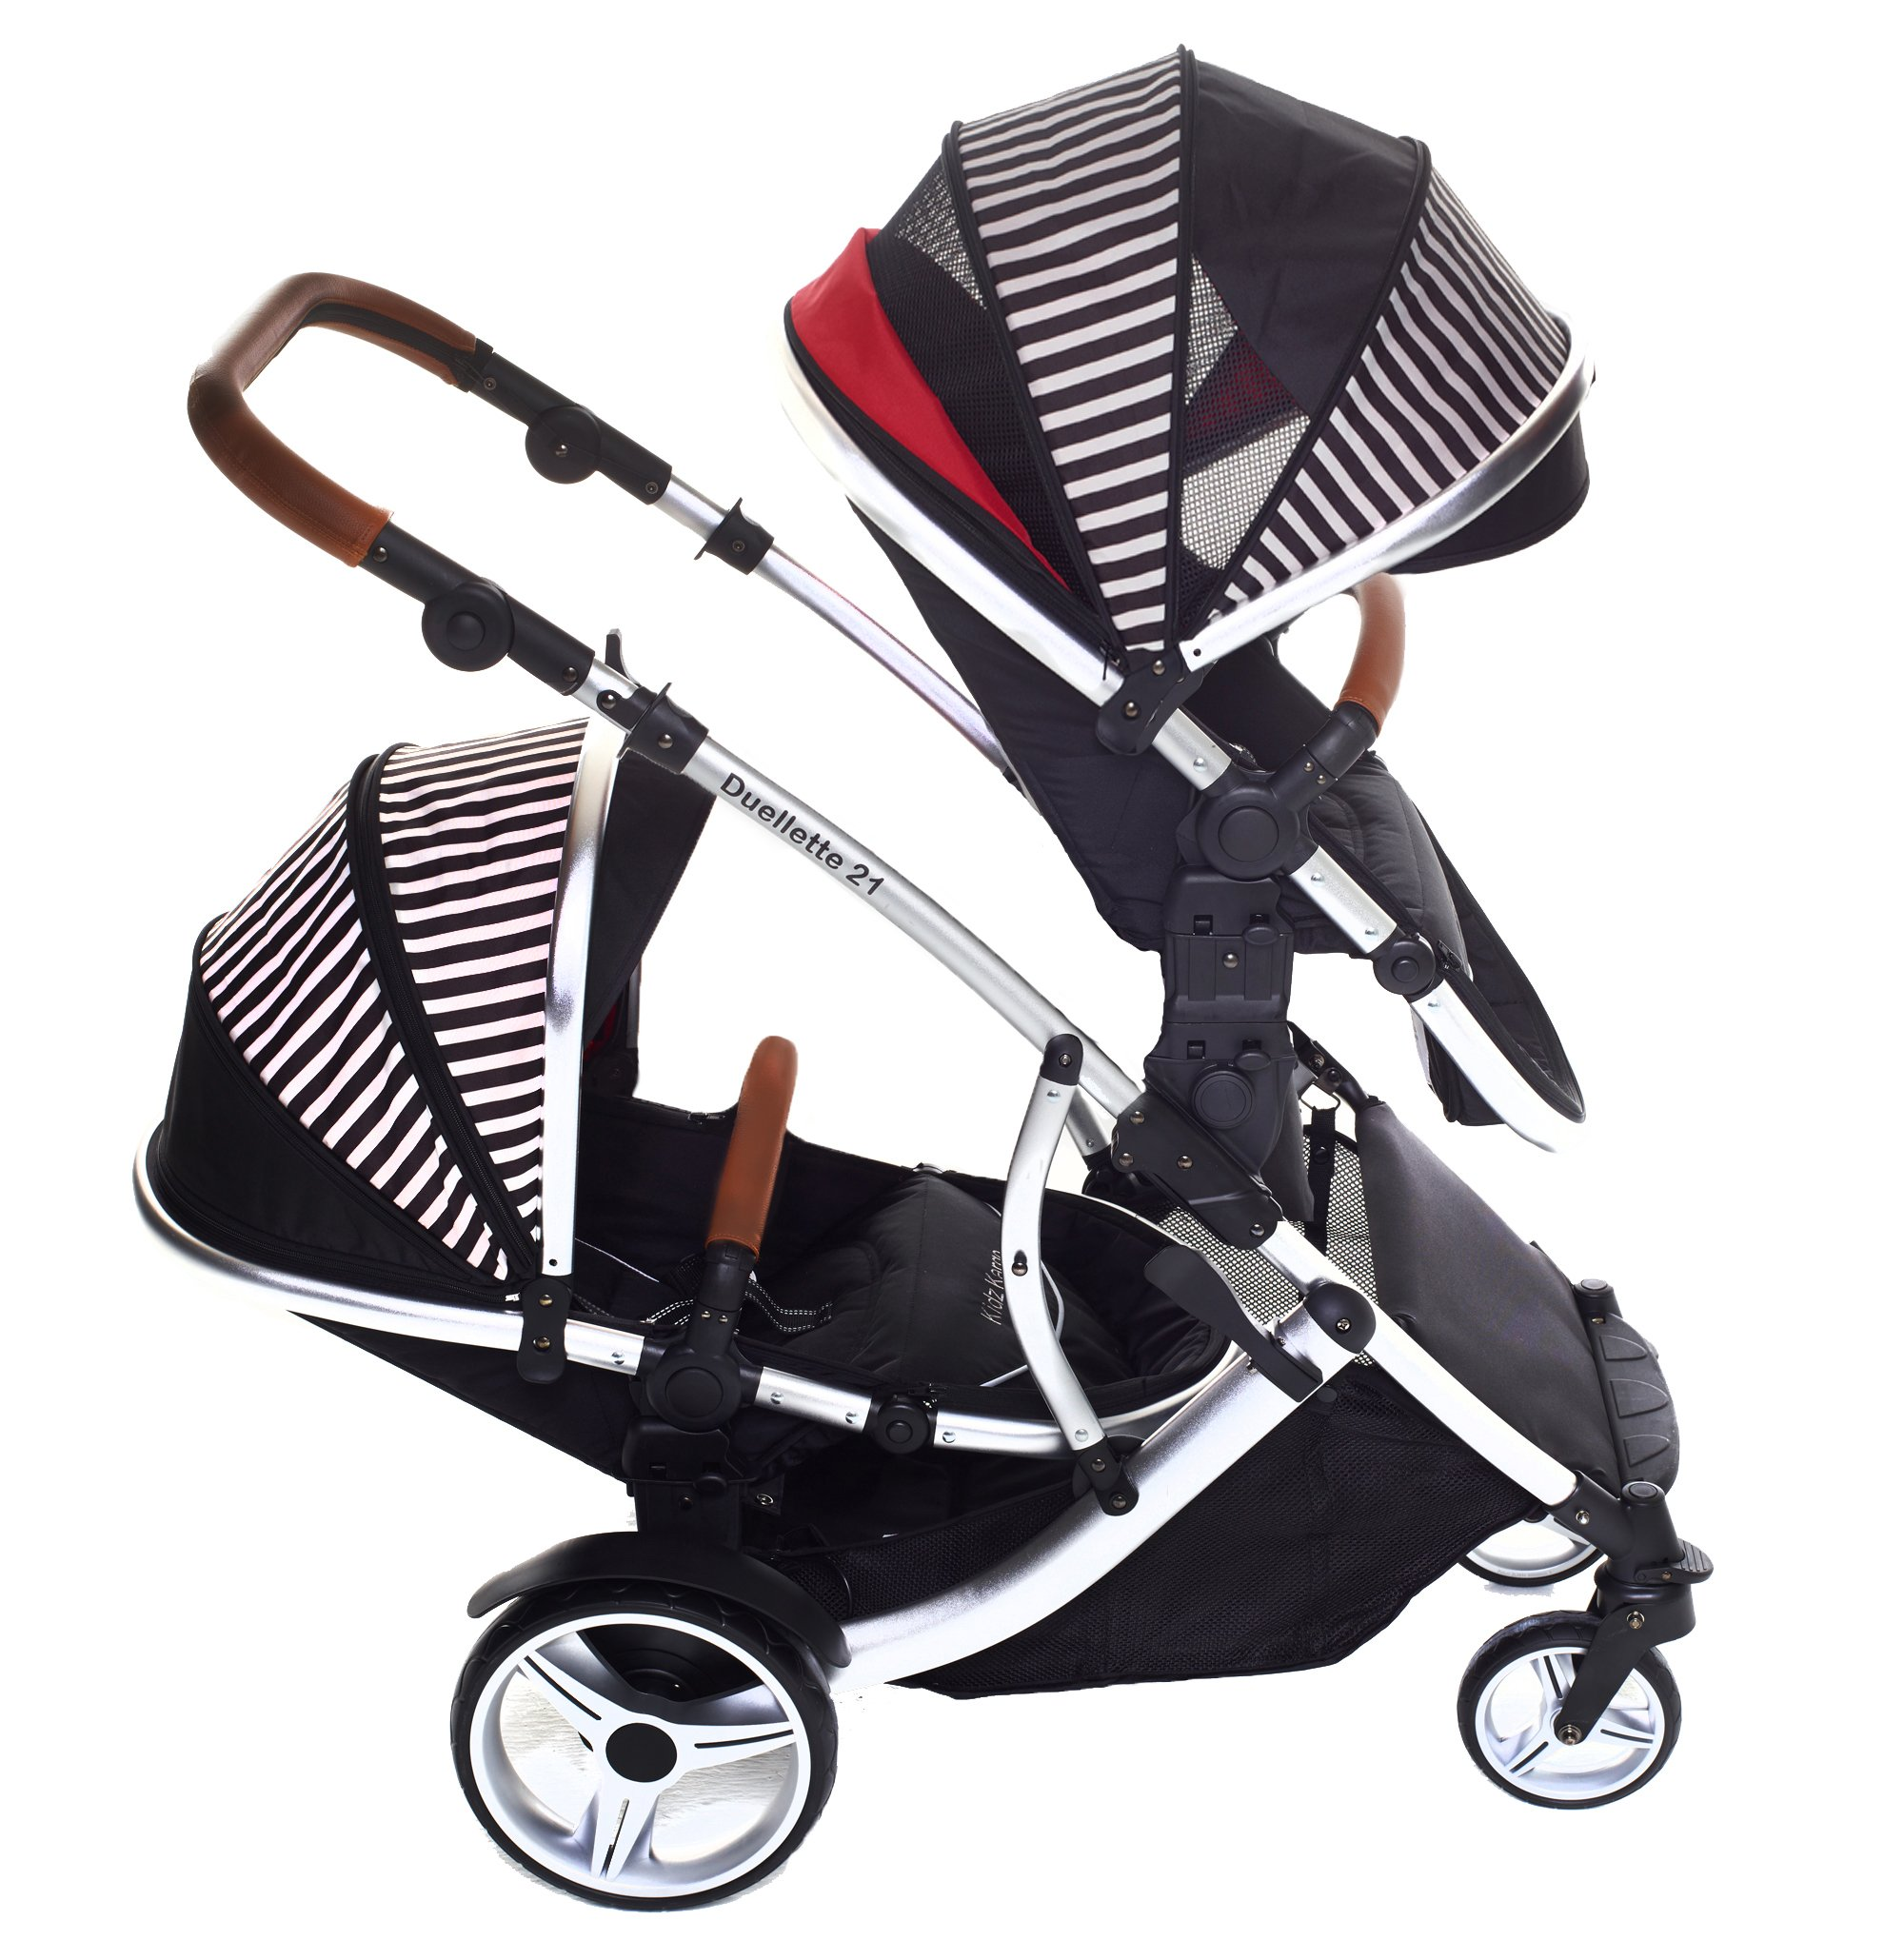 Kids Kargo Duellette 21 Bs Twin Double Pushchair Stroller Buggy with Tan Handle Pack (Oxford Stripe) Kids Kargo Fully safety tested Various seat positions. Both seats can face mum (ideal for twins) Suitability Newborn Twins (if used with car seats) or Newborn/toddler. Accommodates 1 or 2 car seats 1